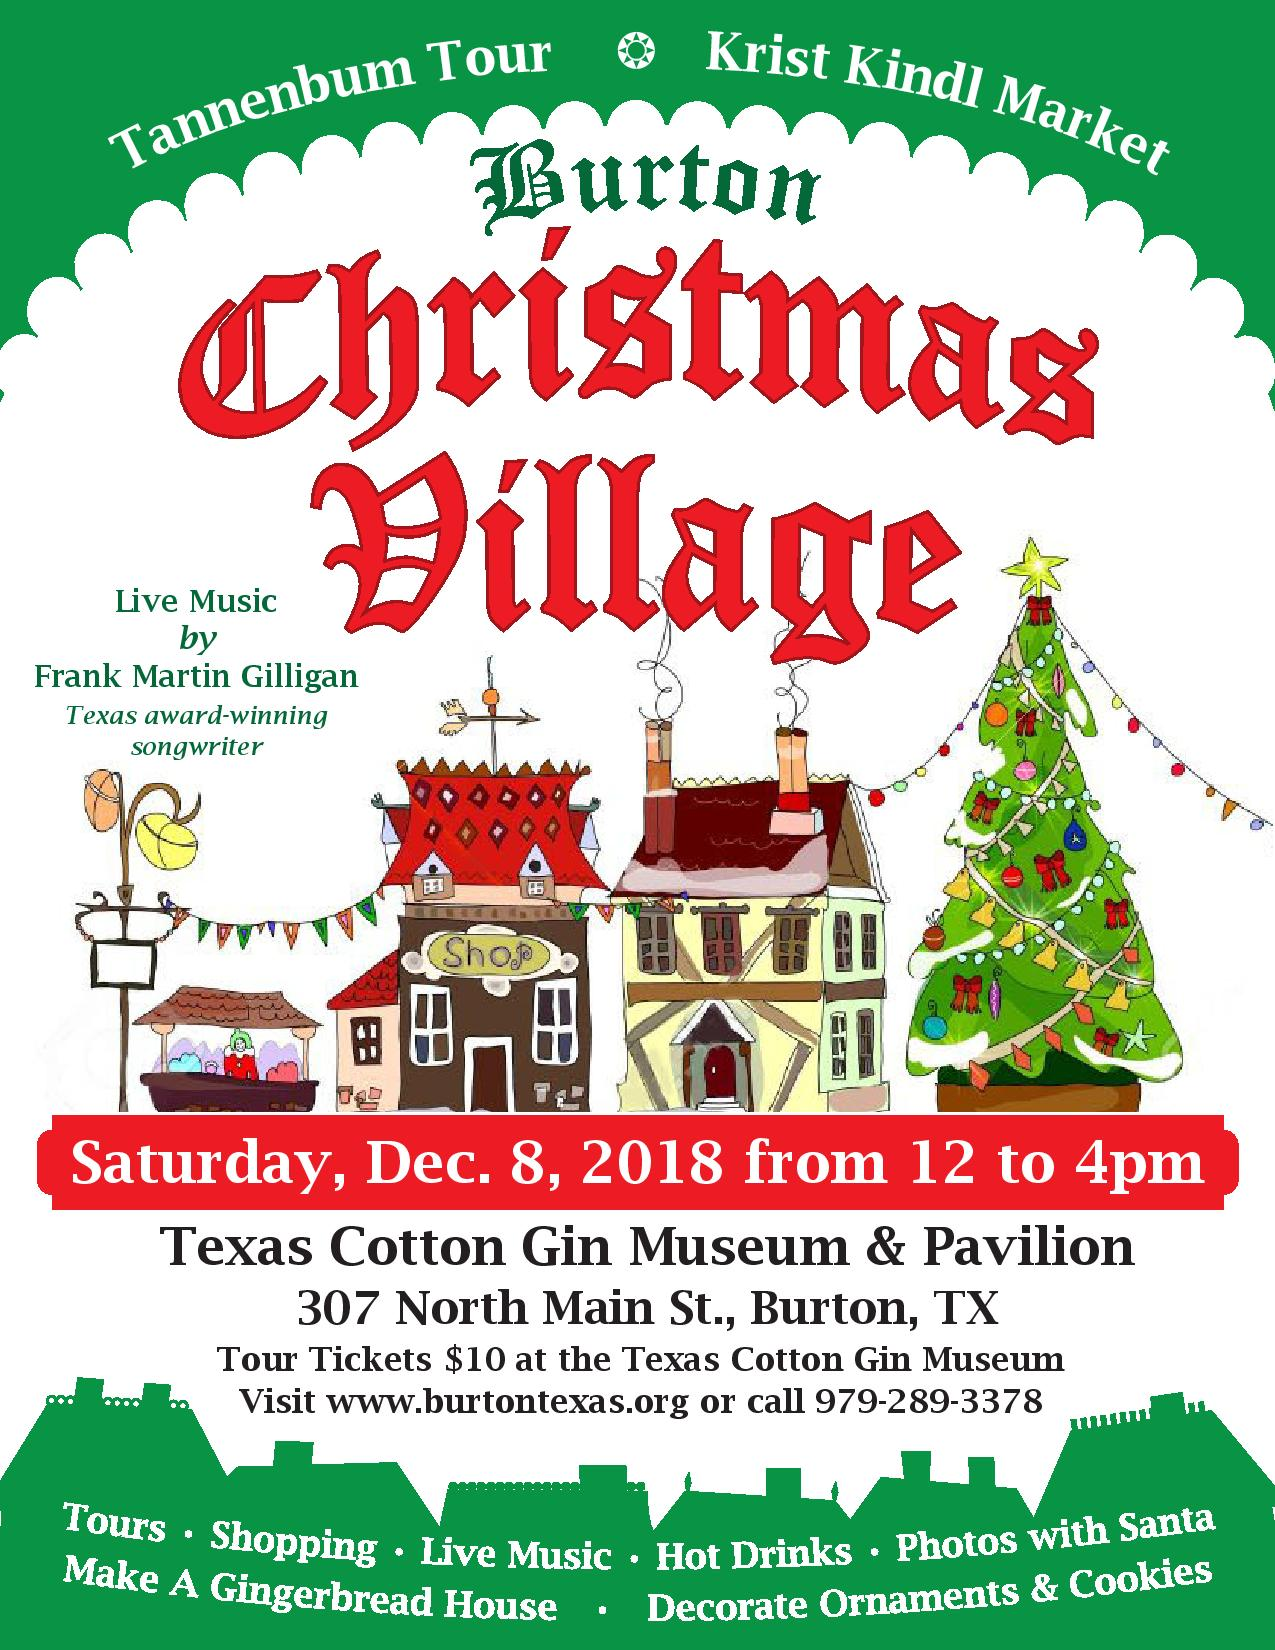 Join us and... - Spend a fun-filled day, Sat. Dec. 8th, in the tiny town of Burton, Pop. 300, located halfway between Austin and Houston on Hwy 290. Explore the Krist Kindl Markt with hand-crafted local items, baked-goods, art & gifts.Soak up the holiday spirit with live music by Frank Martin Gilligan.  There will also be cookie decorating, ornament making and mini-gingerbread house stations for kids of all ages who can get their picture taken with Santa & family photos, too!Join the Heritage Society's Tannenbaum Walking Tour of several historic buildings and homes in town. Tour tickets $10/person. Visit antique stores, thrift stores, restaurants and taverns within blocks of each other.Presented by the Burton Heritage Society, Bridge Ministry & Chamber, in partnership with the Texas Cotton Gin Museum. For more information visit the at www.burtontexas.org or call the Texas Cotton Gin Museum at 979-289-3378.